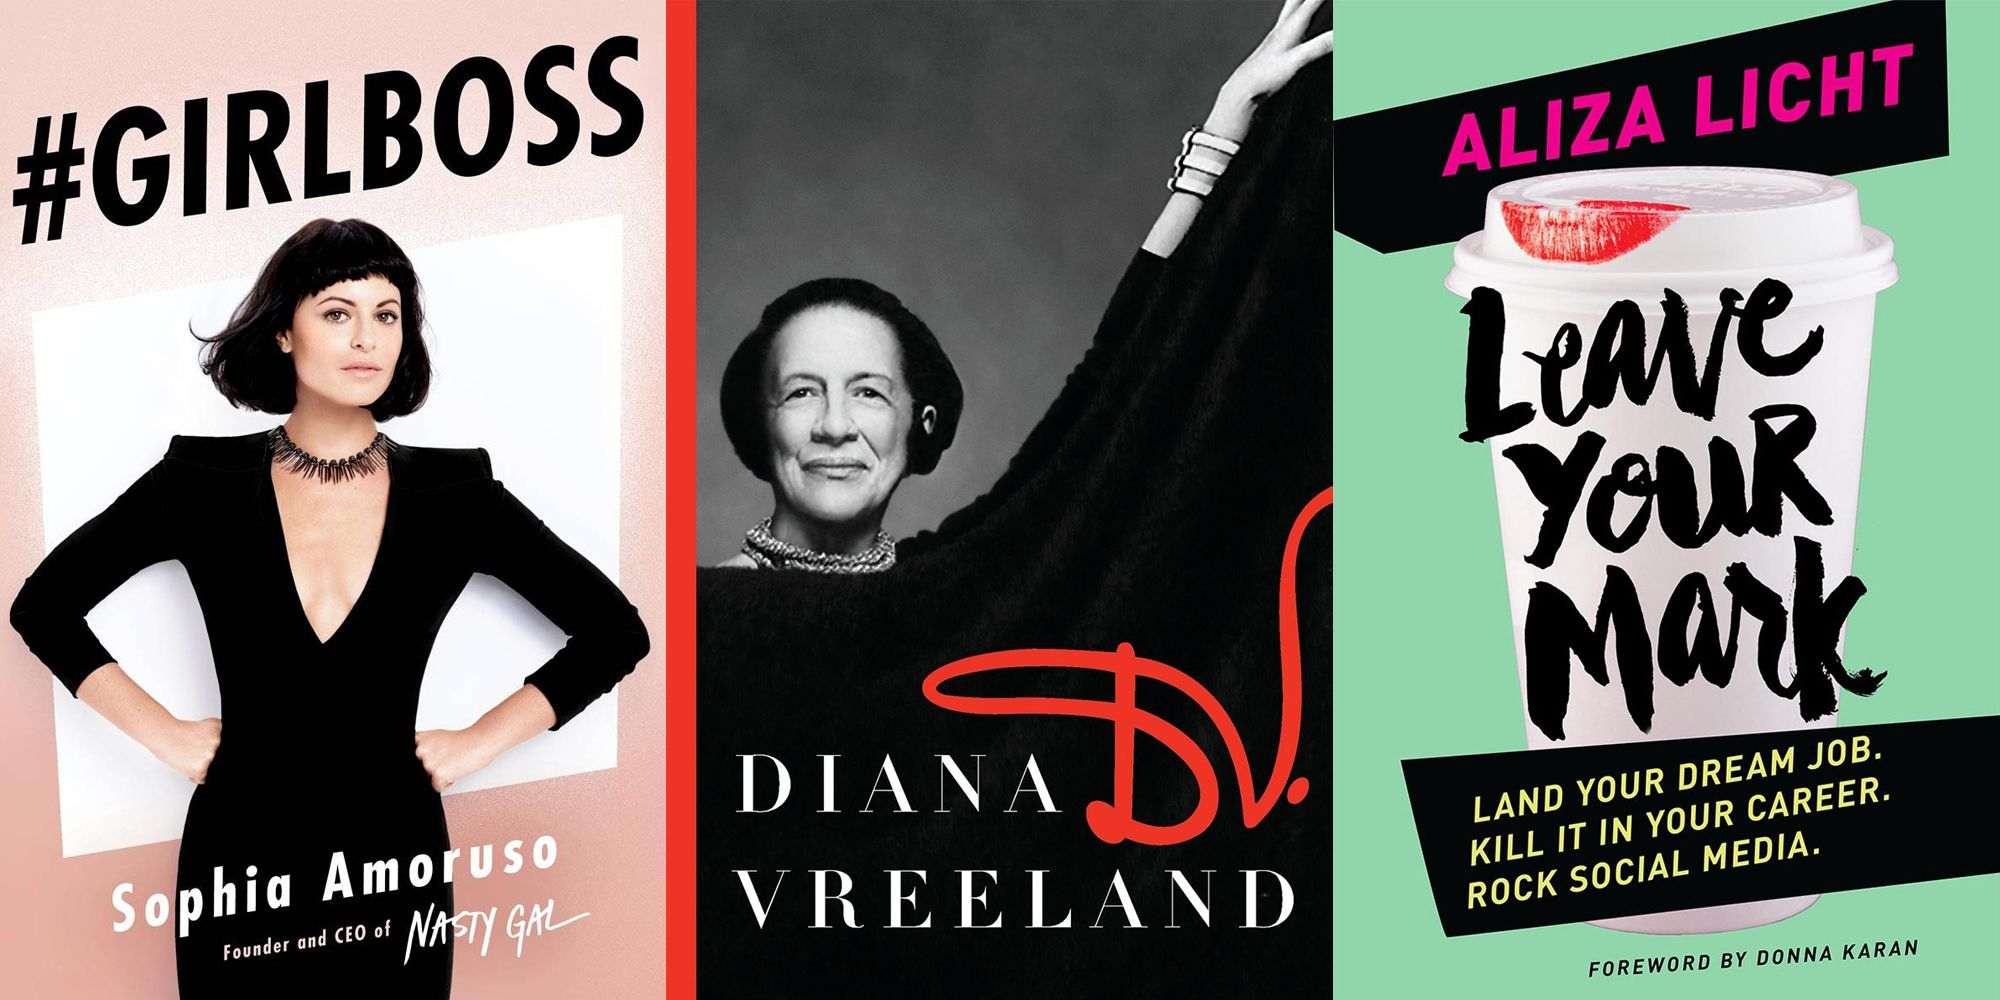 MORE: 10 Stylish New Fashion Books To Give This Year forecasting